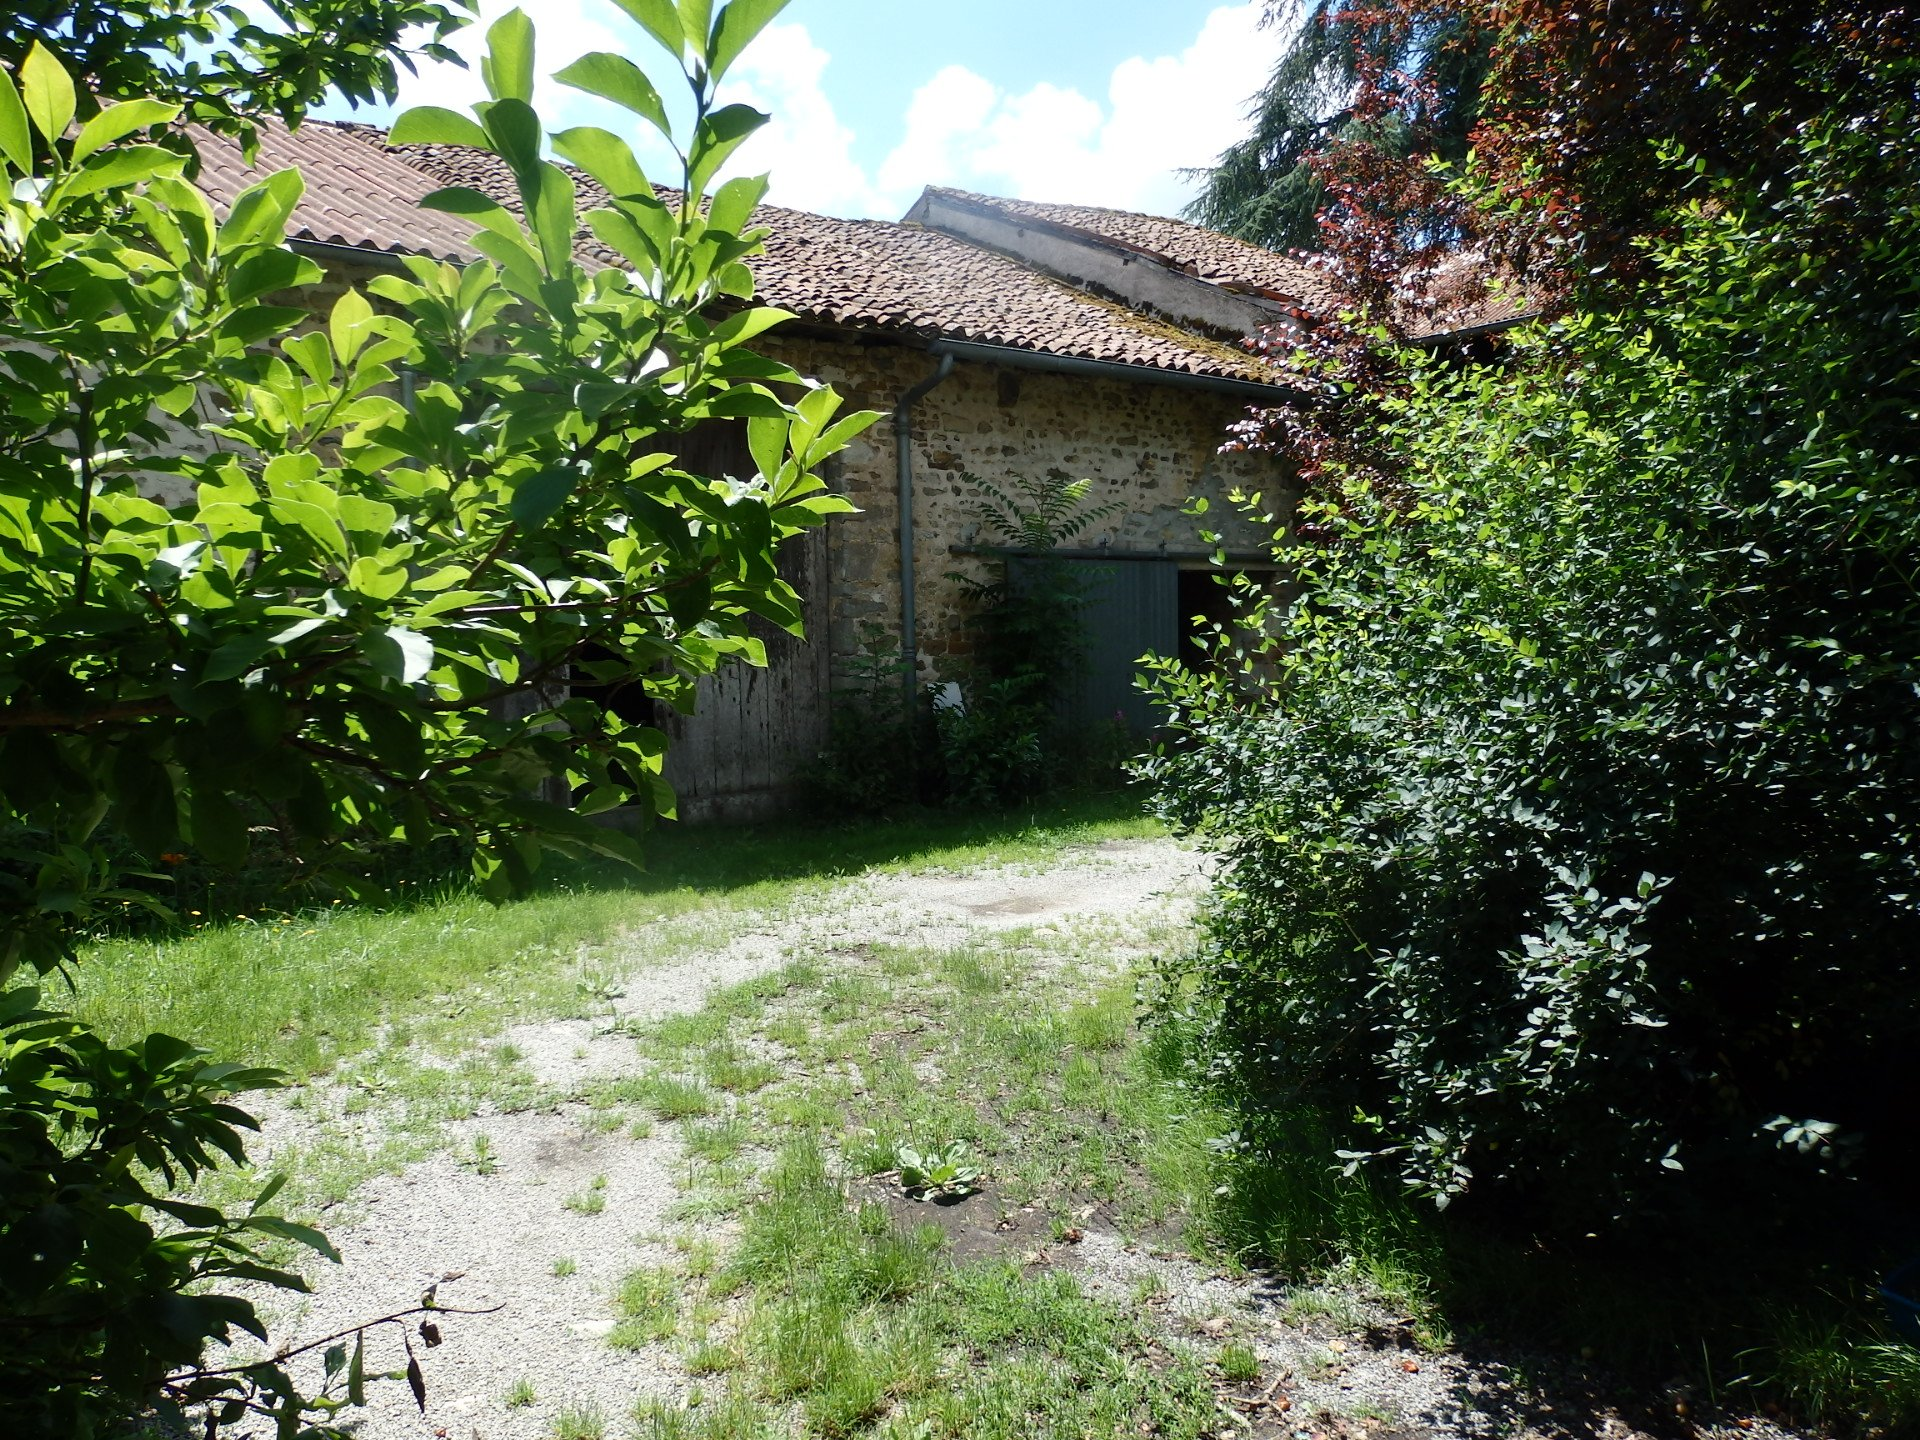 For Sale Two Houses in Bussière-Poitevine in the Haute Vienne